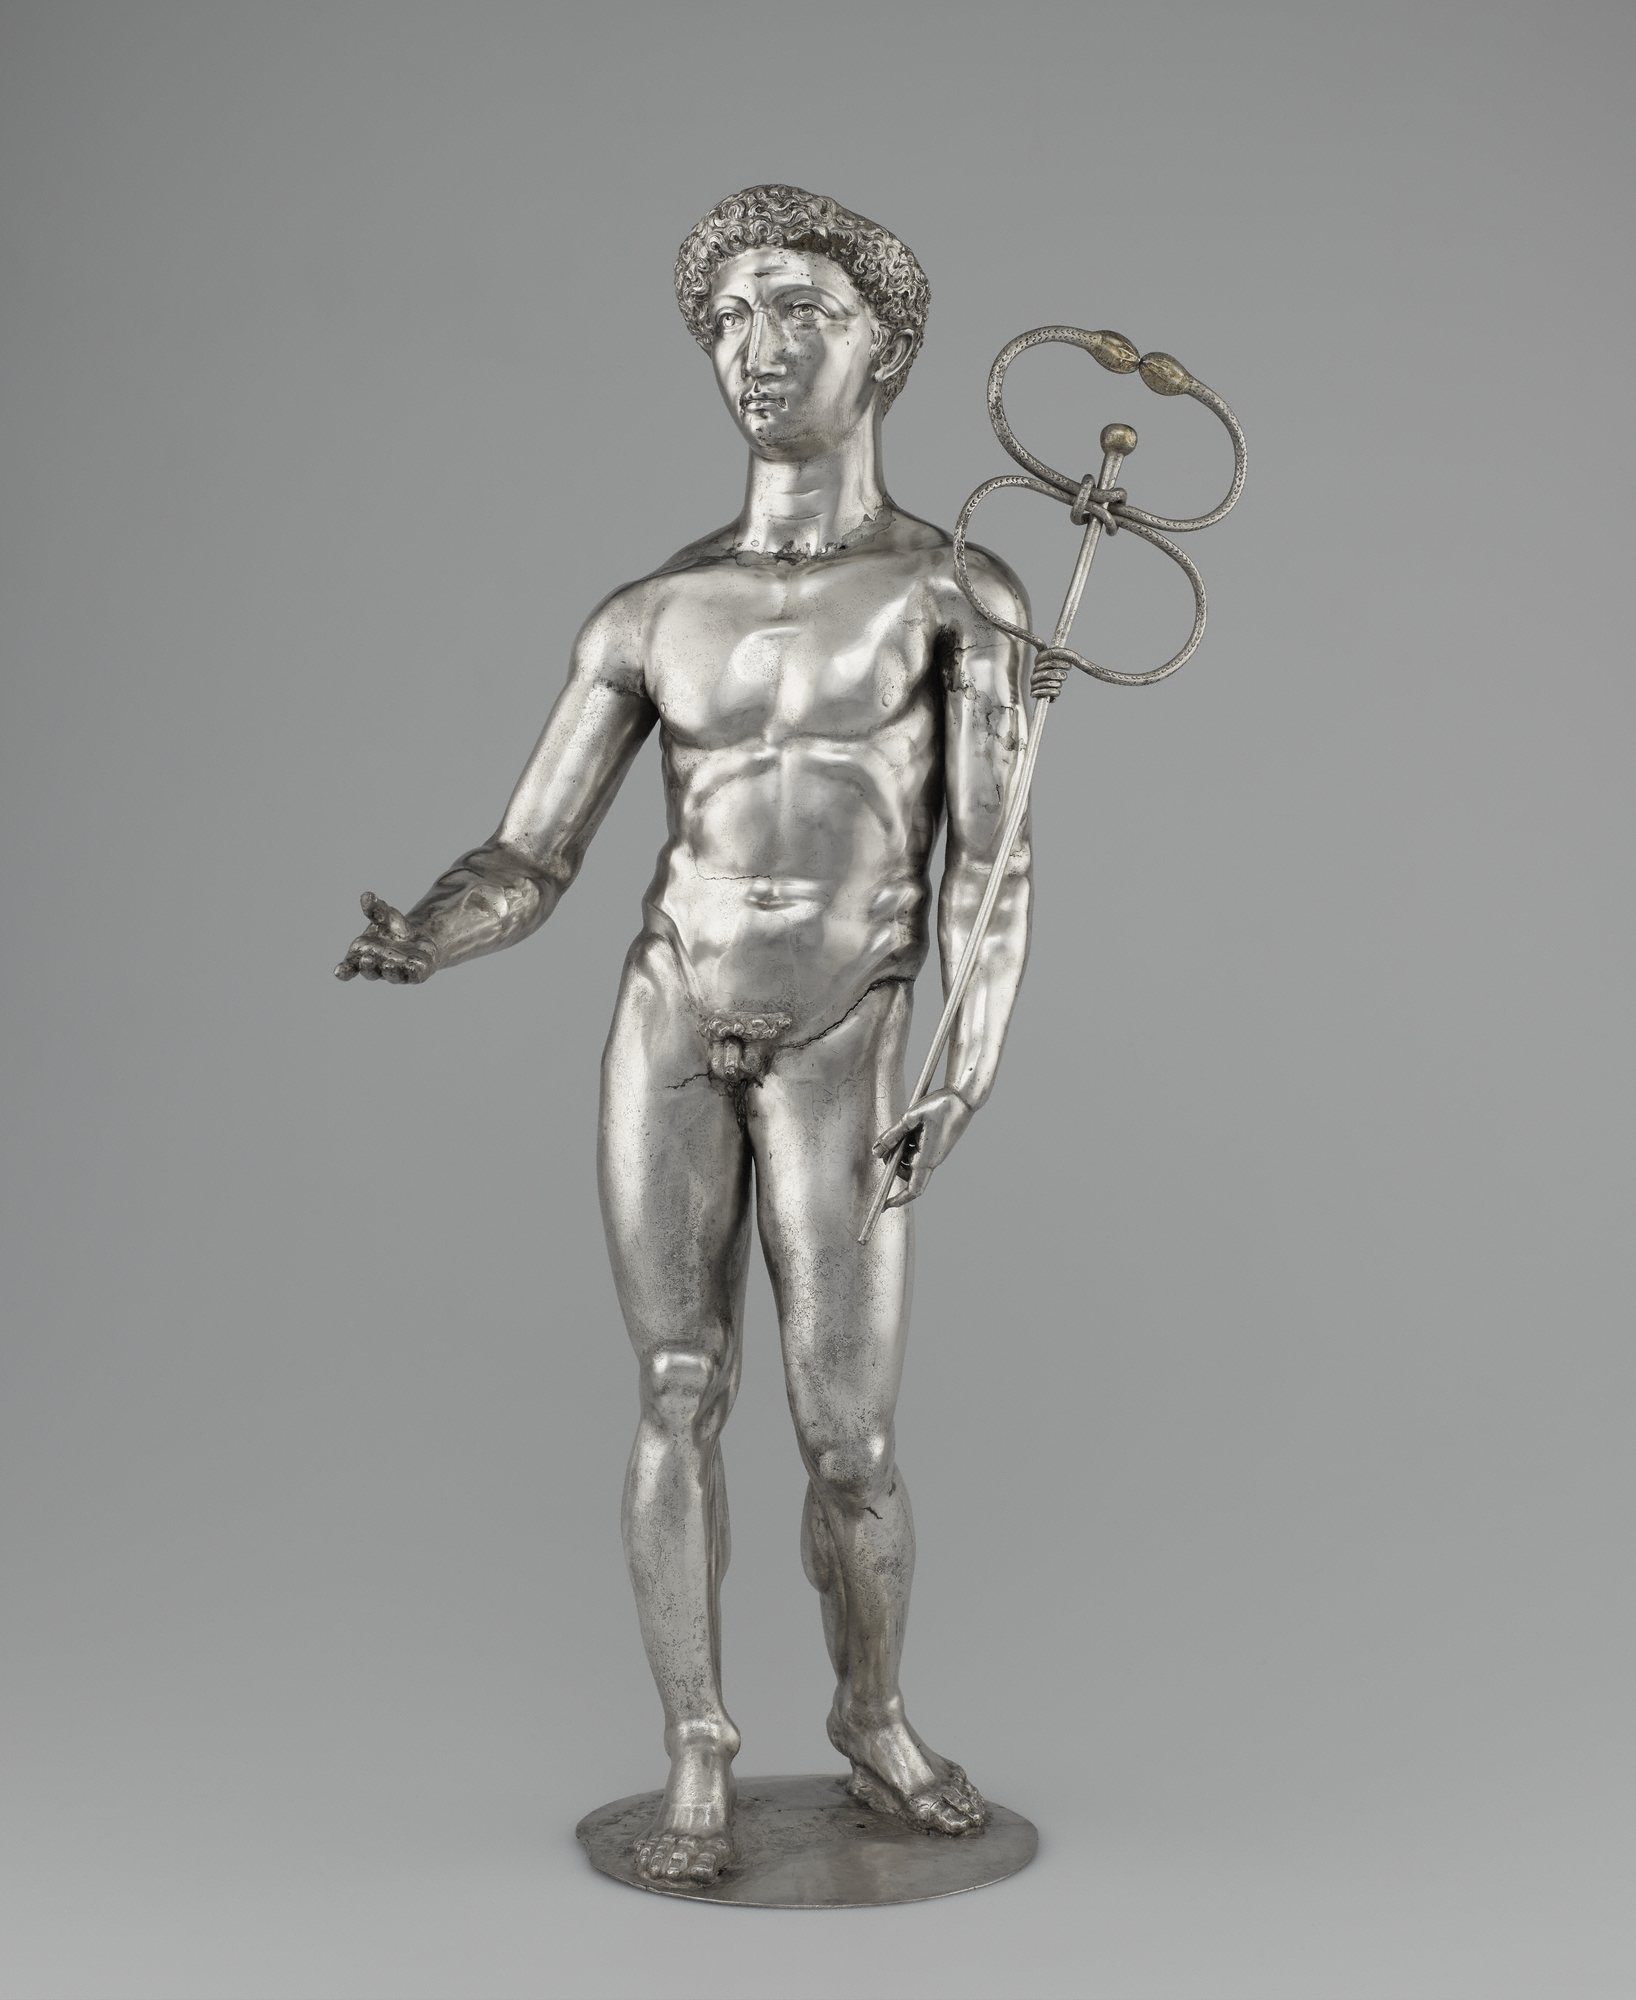 2. Statuette of Mercury, Roman, 3rd century A.D. Silver and gold mounted on an early 19th century wax support. Cabinet de Médailes of the Bibliothèque nationale de France, Département des monnaies et antiques, Paris.